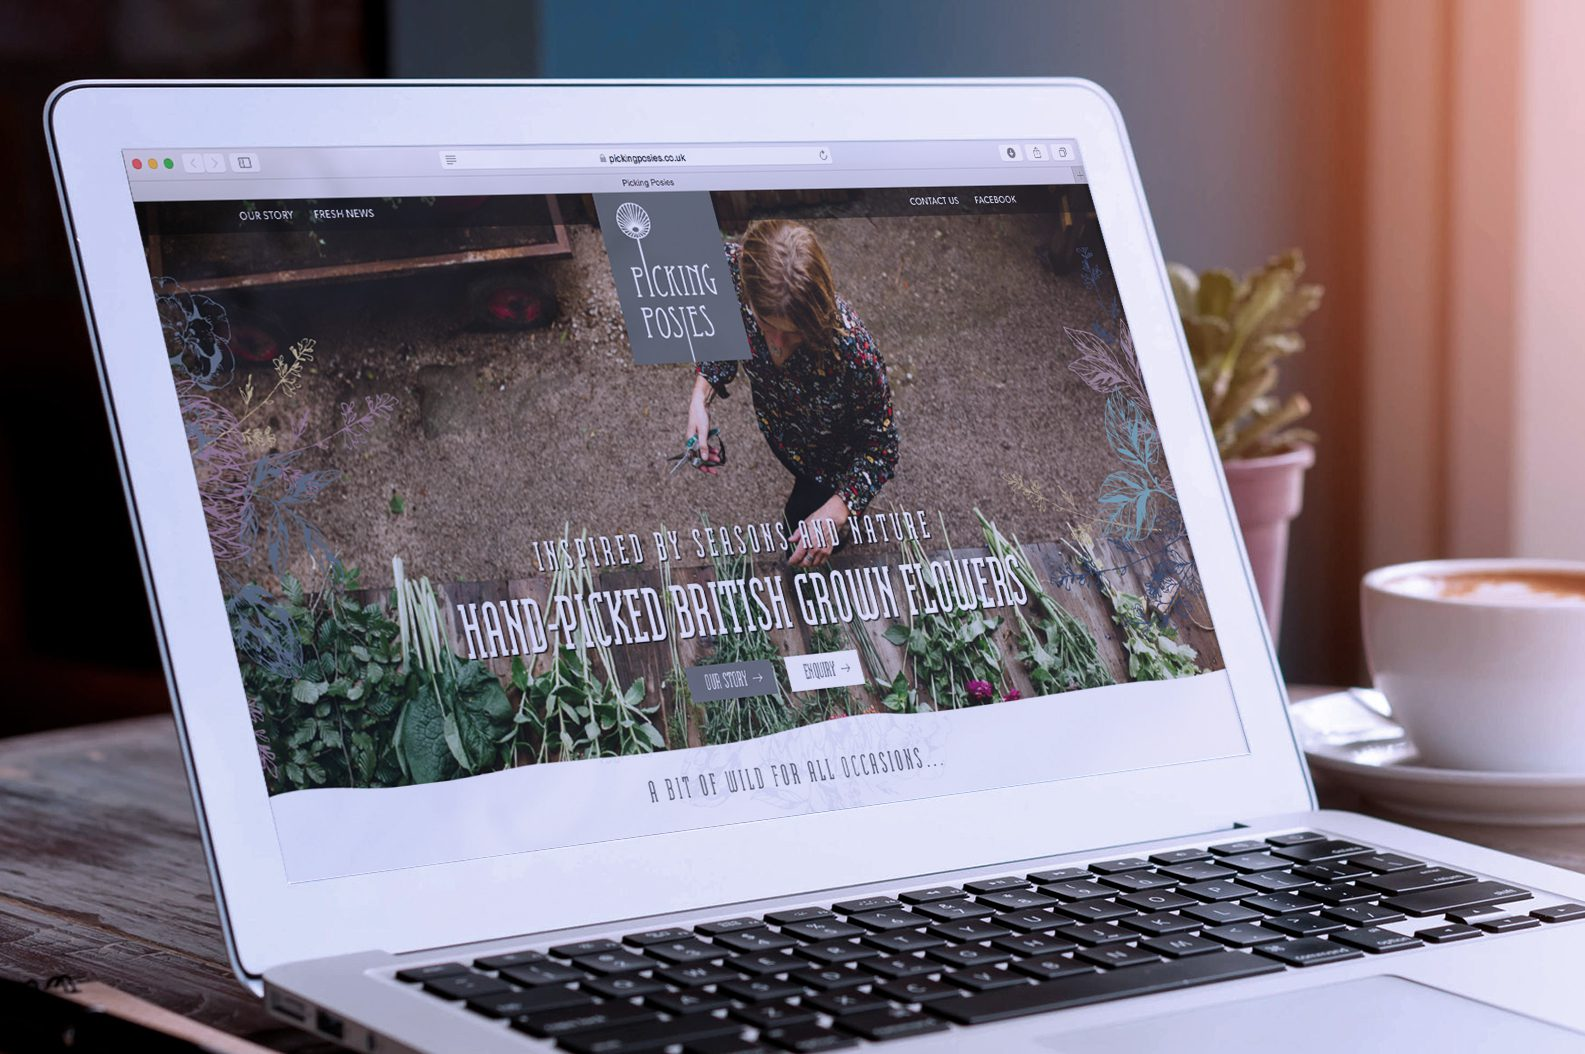 Picking Posies launches with a website designed by Hotfoot